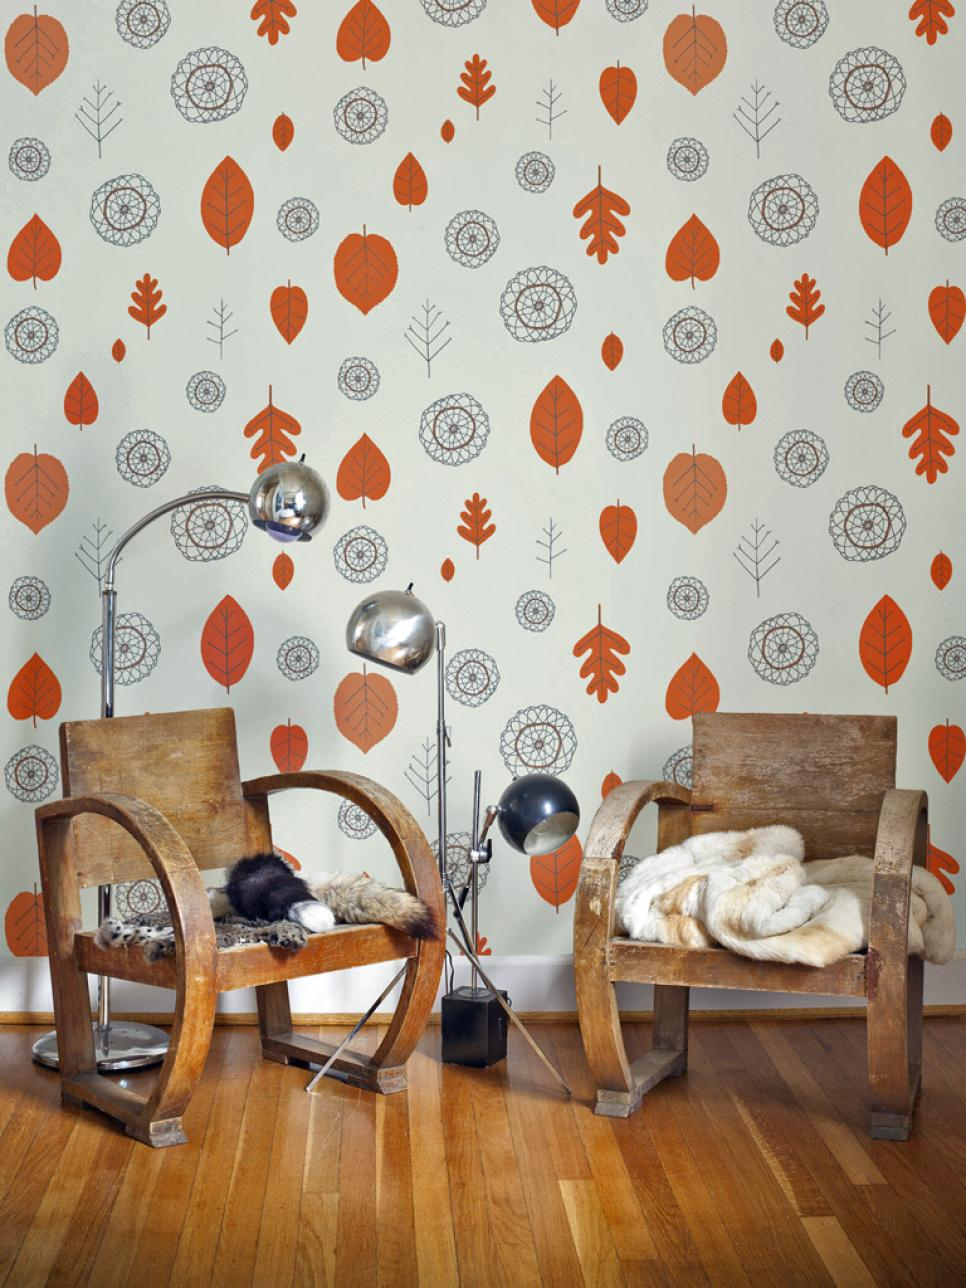 Vintage wallpaper ideas hgtv Retro home ideas